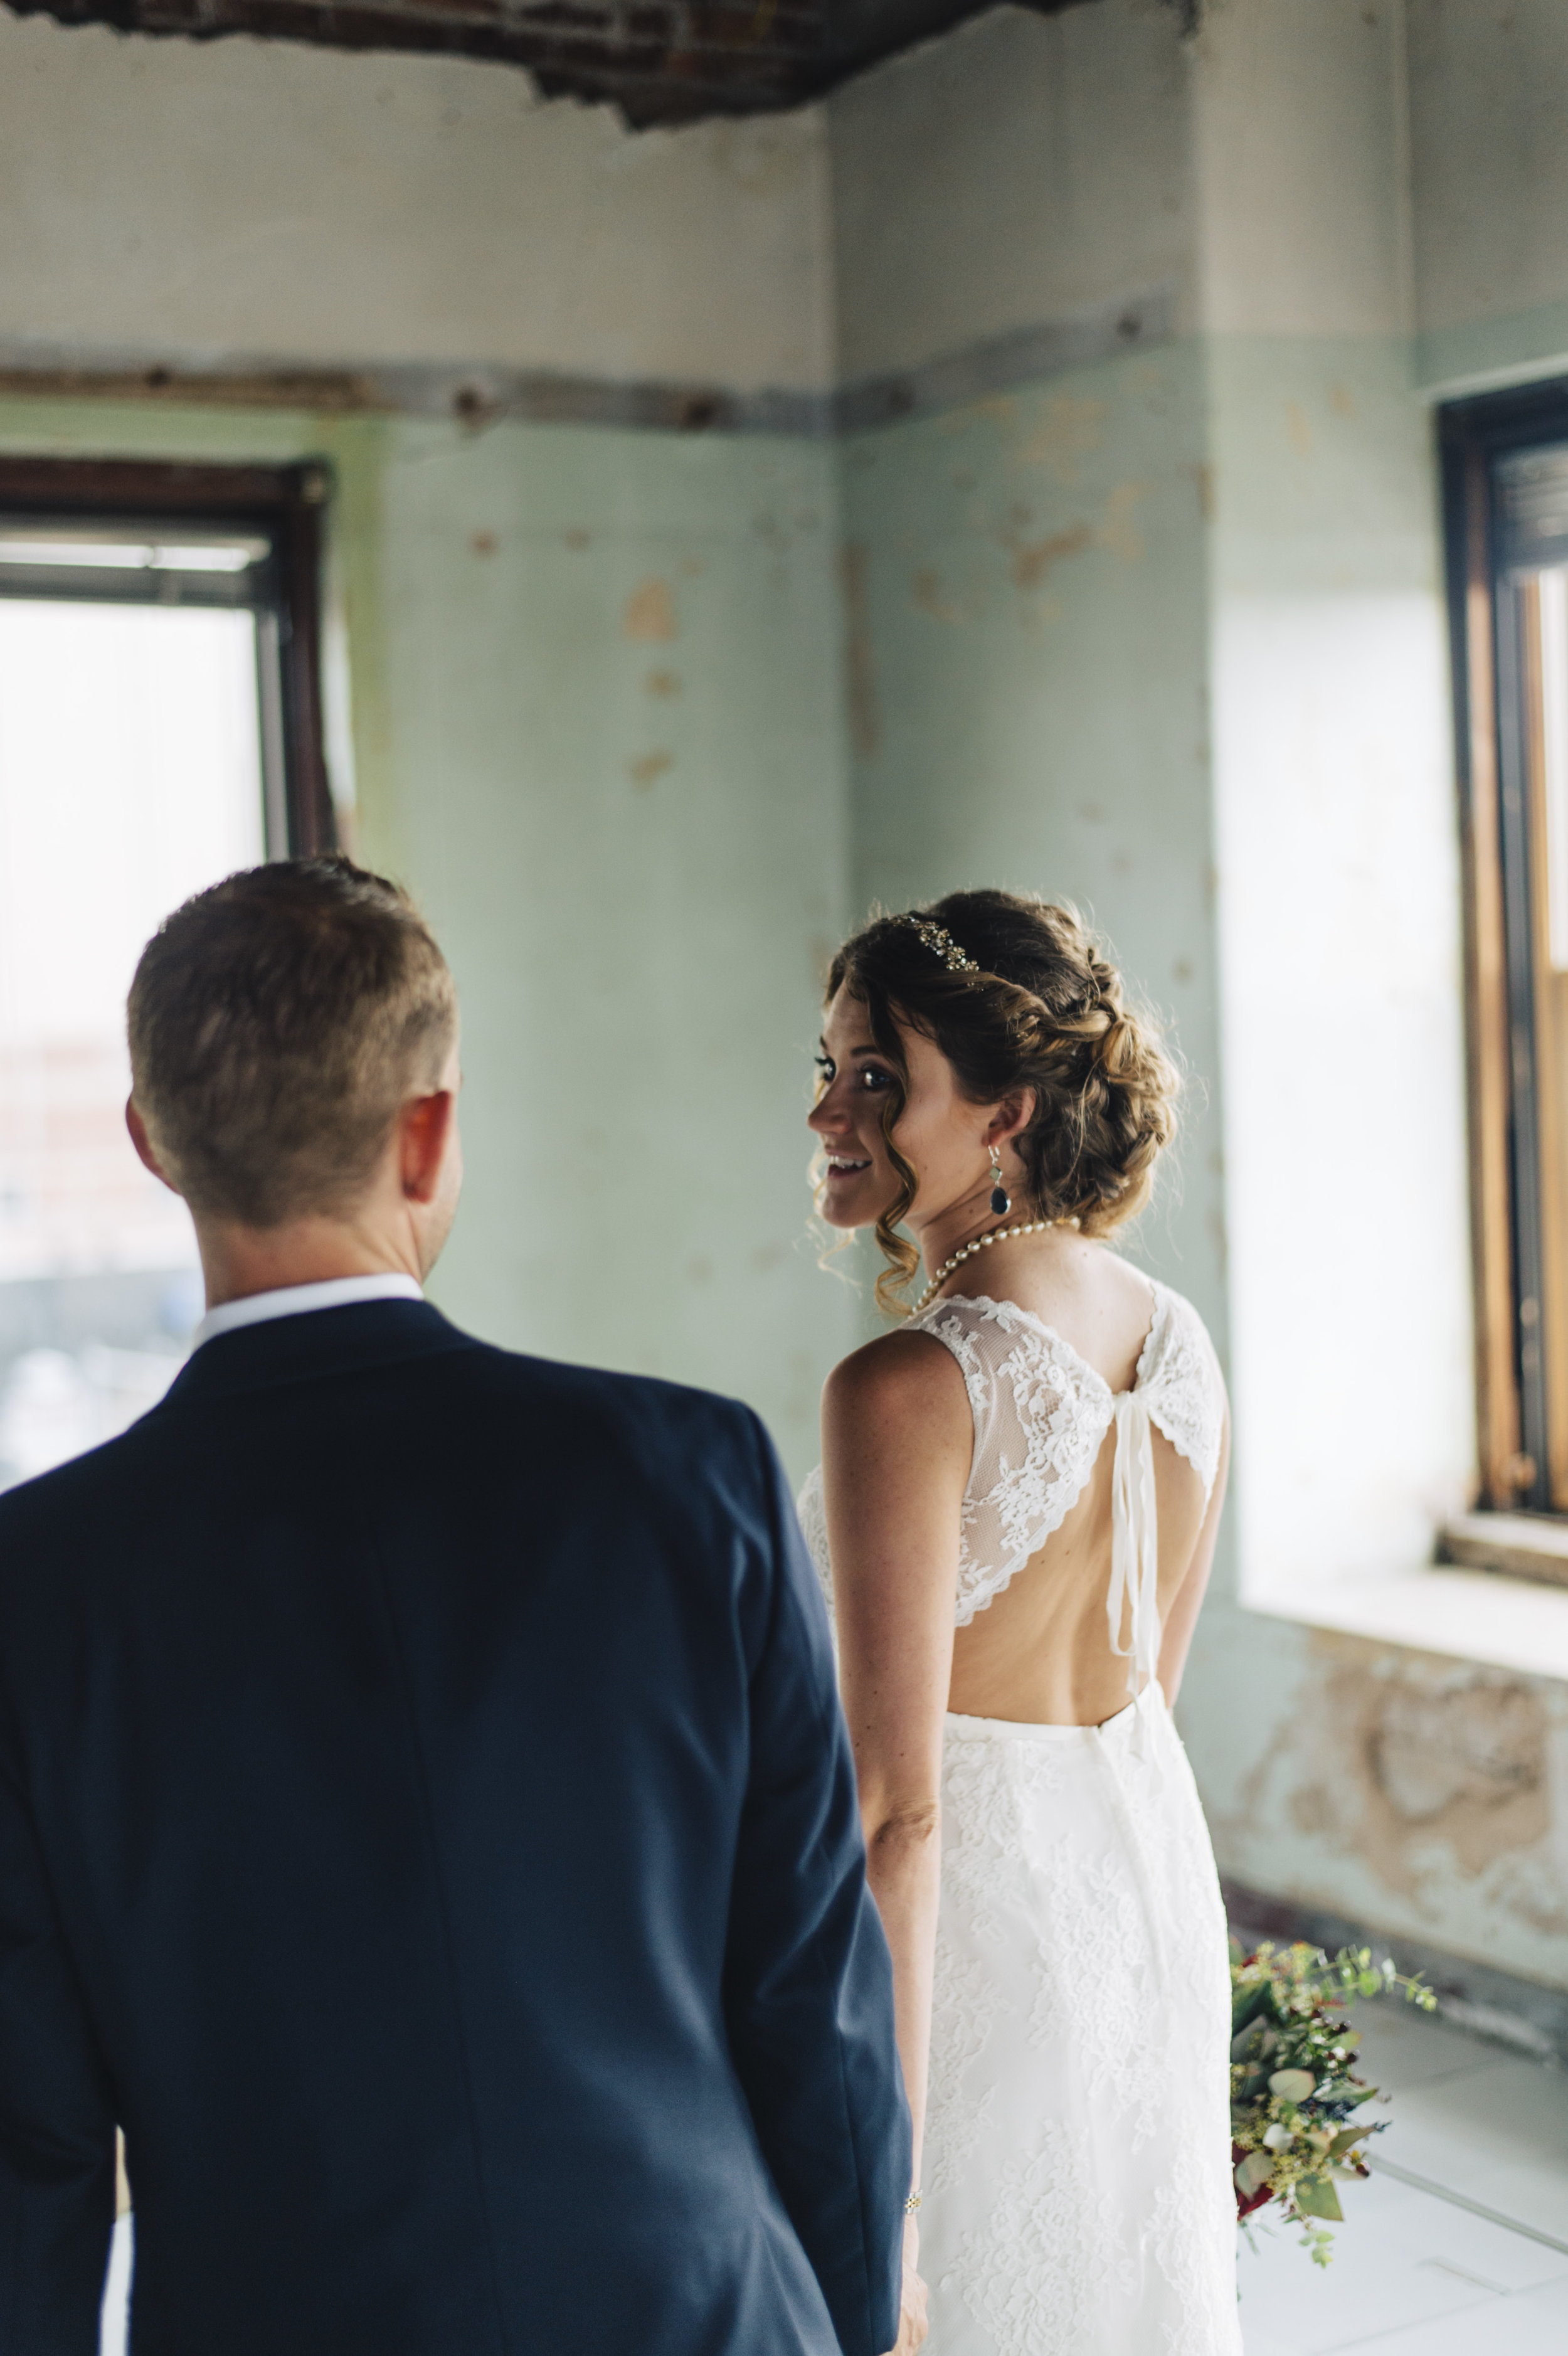 Wedding Packages - Starting at $1700+